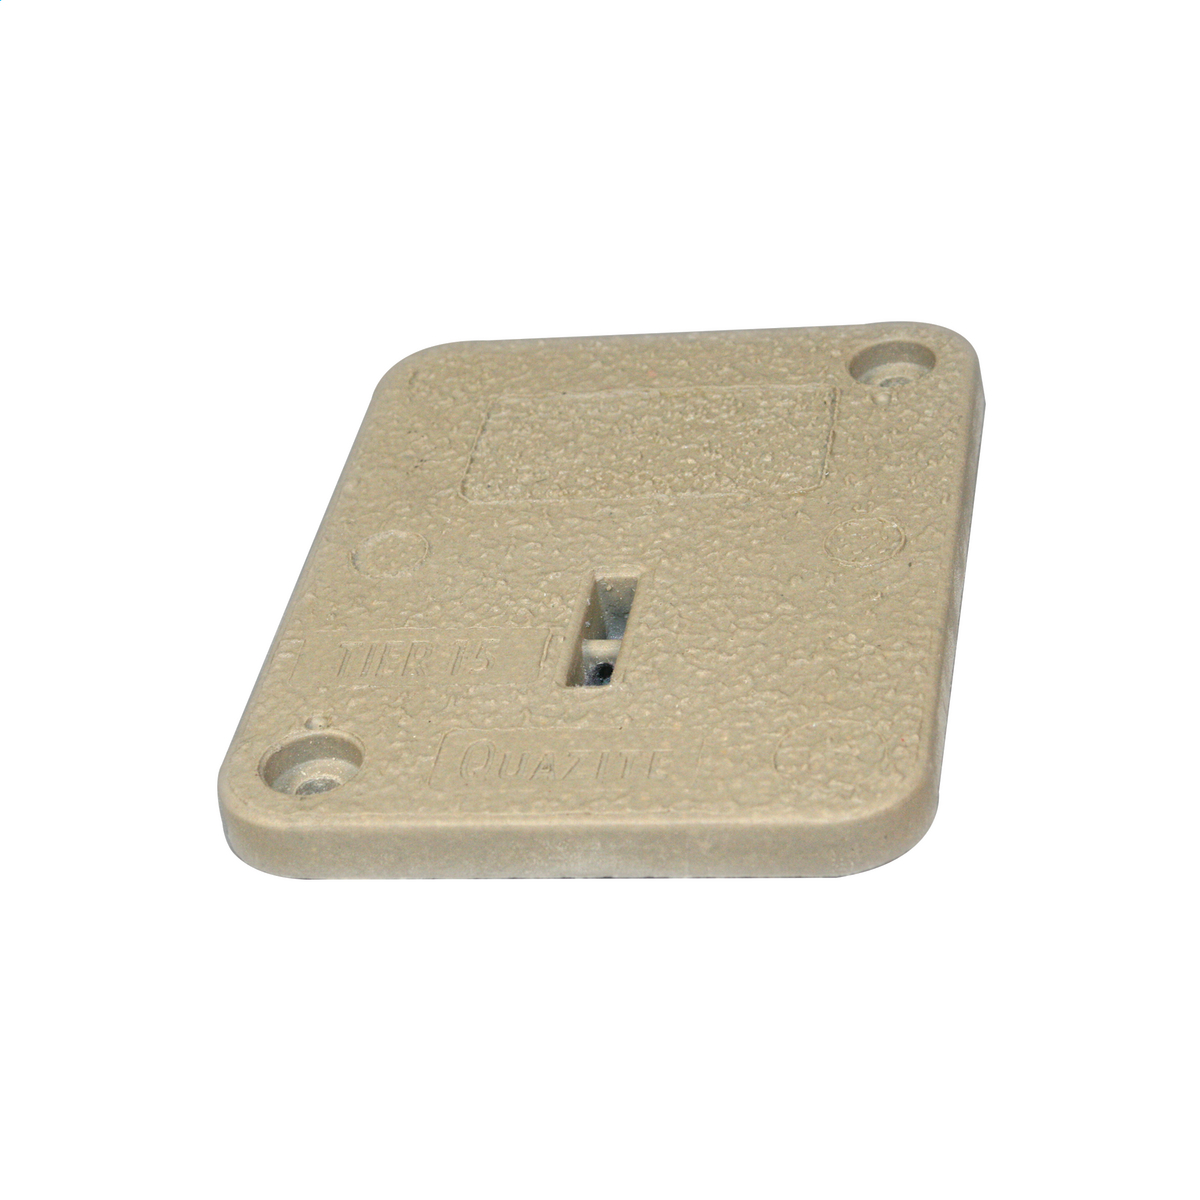 QUA PC1212CA0017 COVER-ELEC W/2 BOLT & 2 WASHER BOLT #C080174 WASHER #C080210